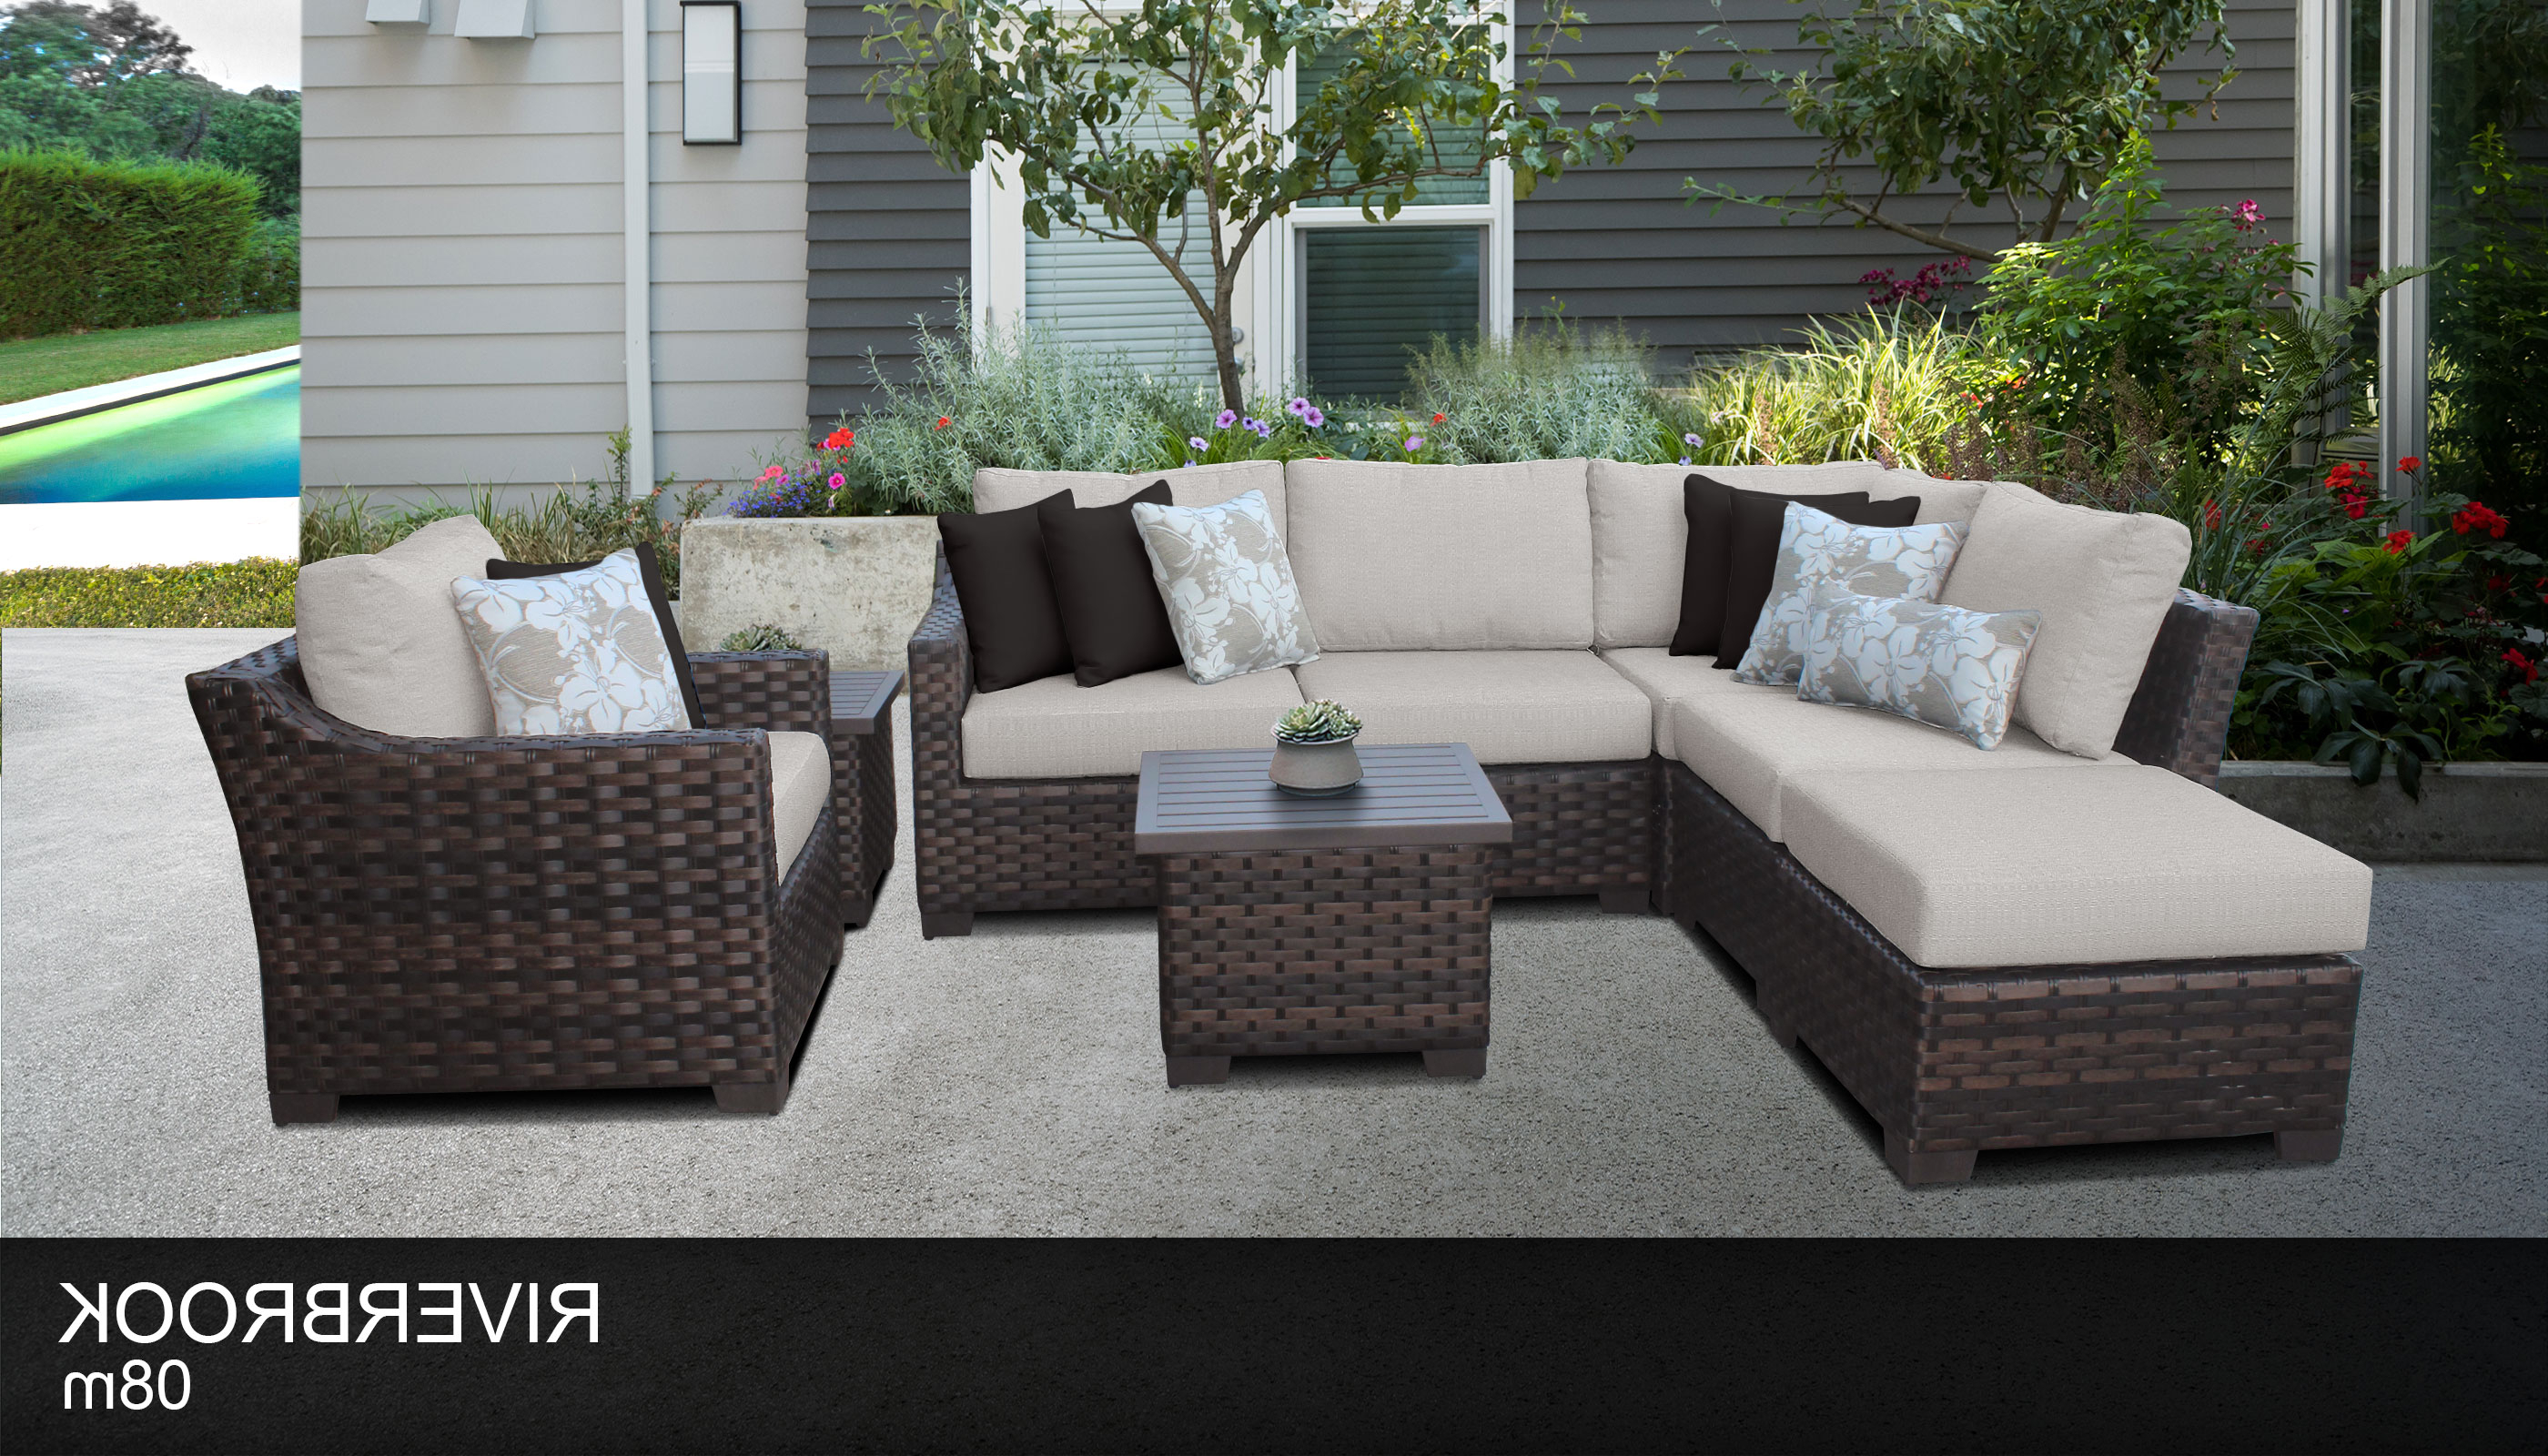 Design Furnishings In Current Oreland Patio Sofas With Cushions (View 9 of 20)